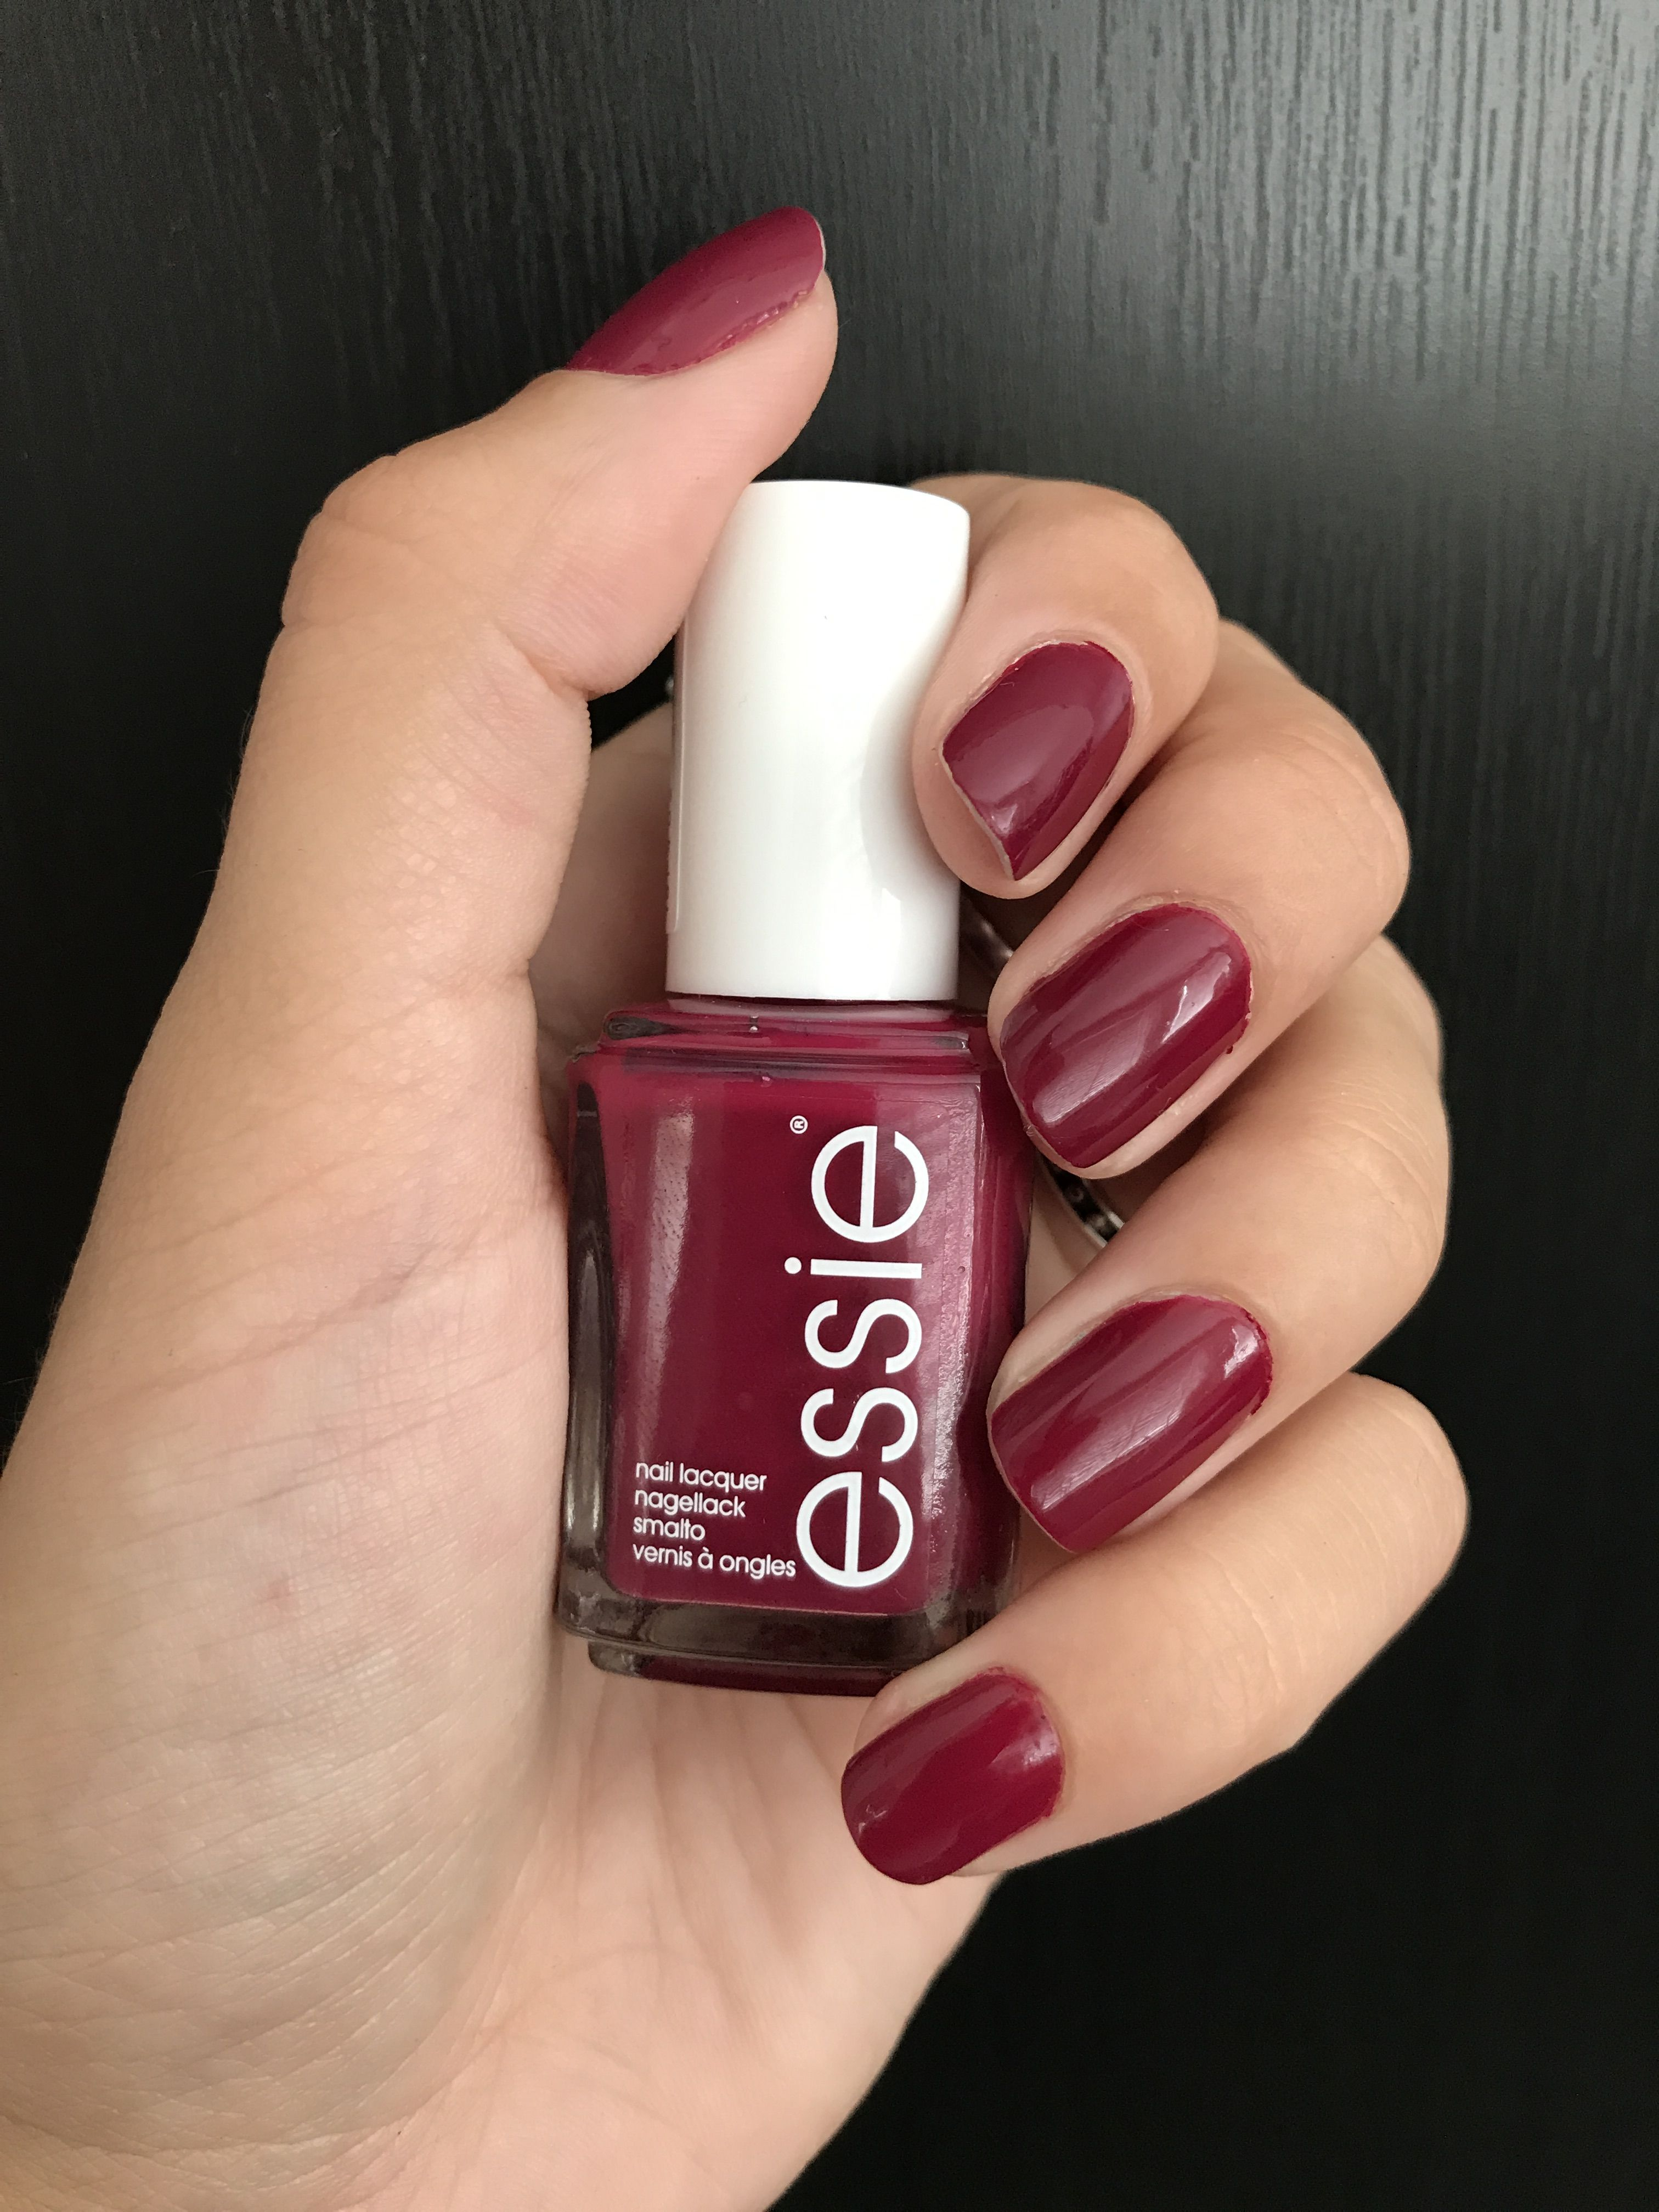 Essie Knee-High life | Essie | Pinterest | Beauty nails, OPI and Make up